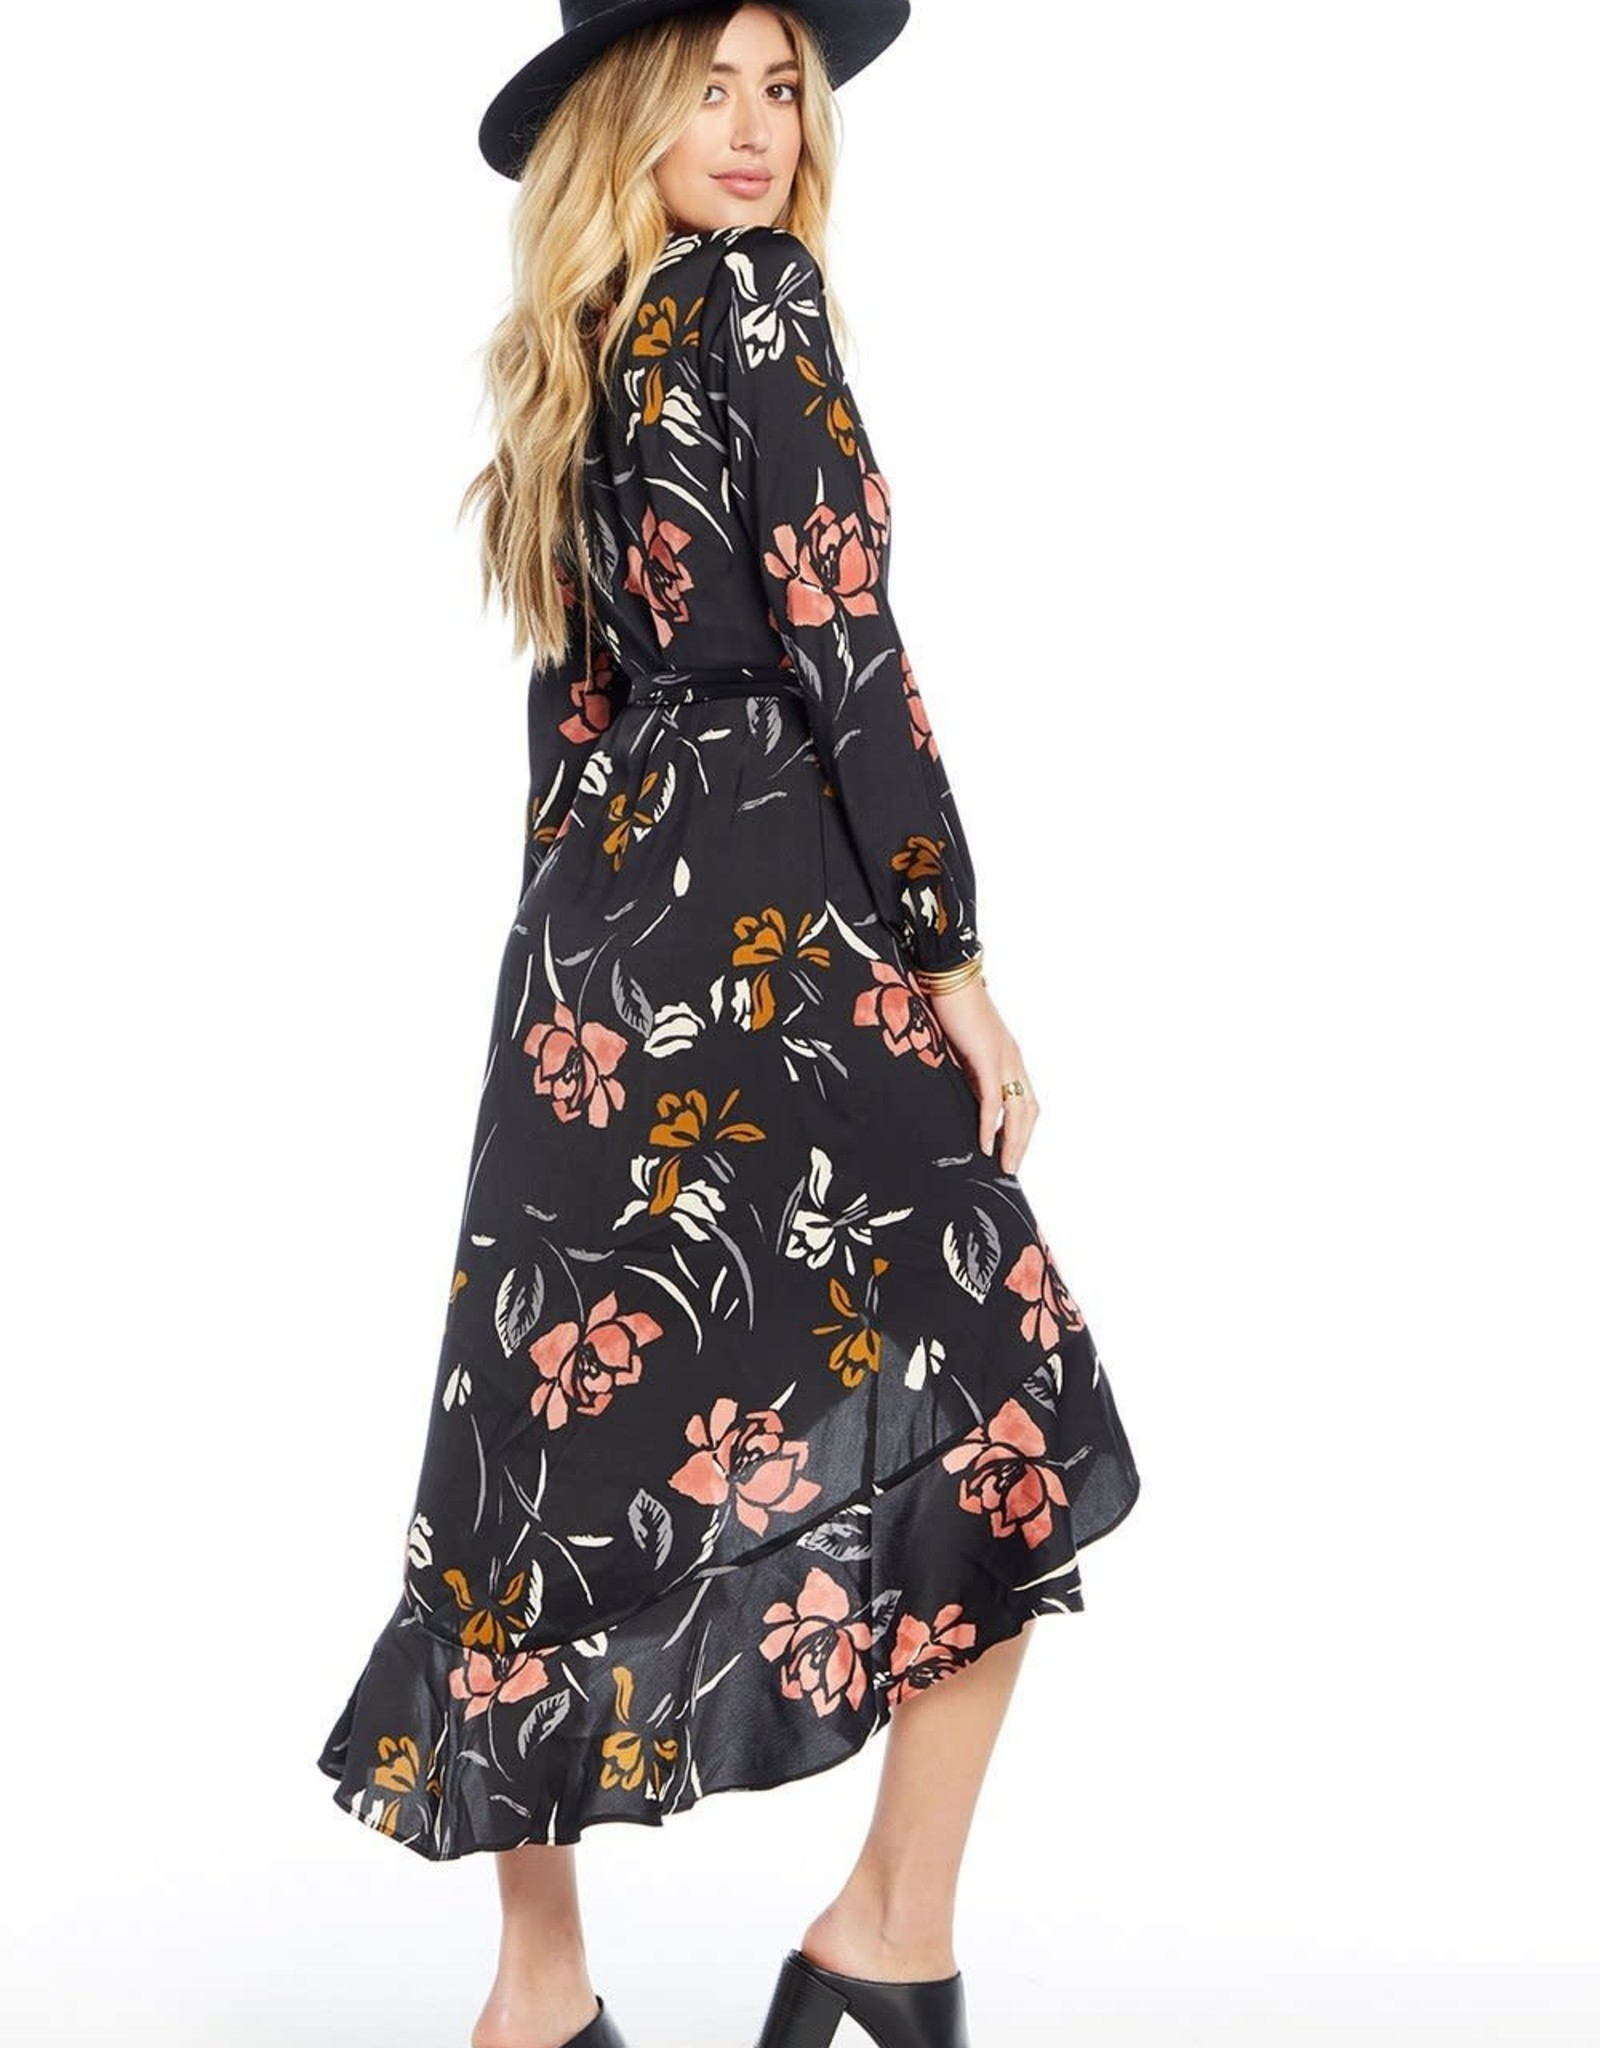 SALTWATER LUXE TIA WRAP DRESS, Black Floral